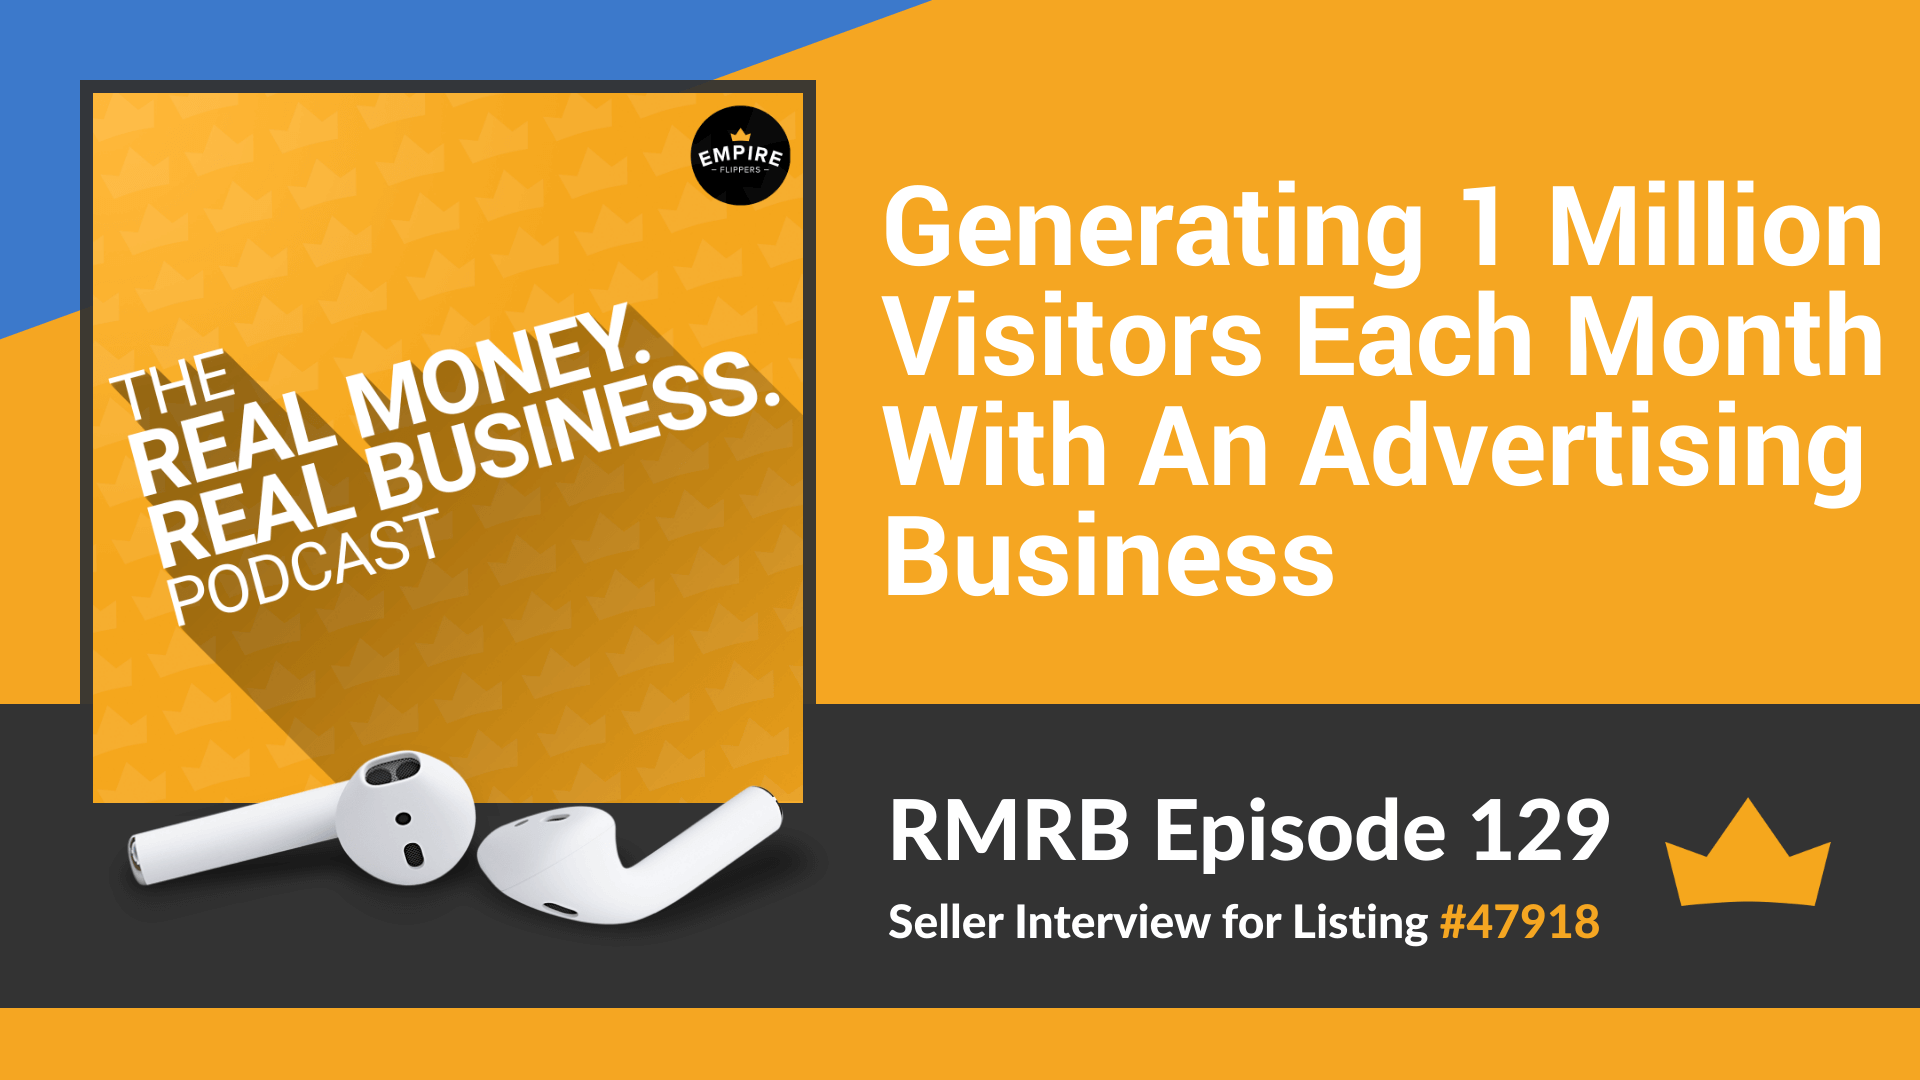 RMRB 129 - Generating 1 Million Visitors Each Month With An Advertising Business